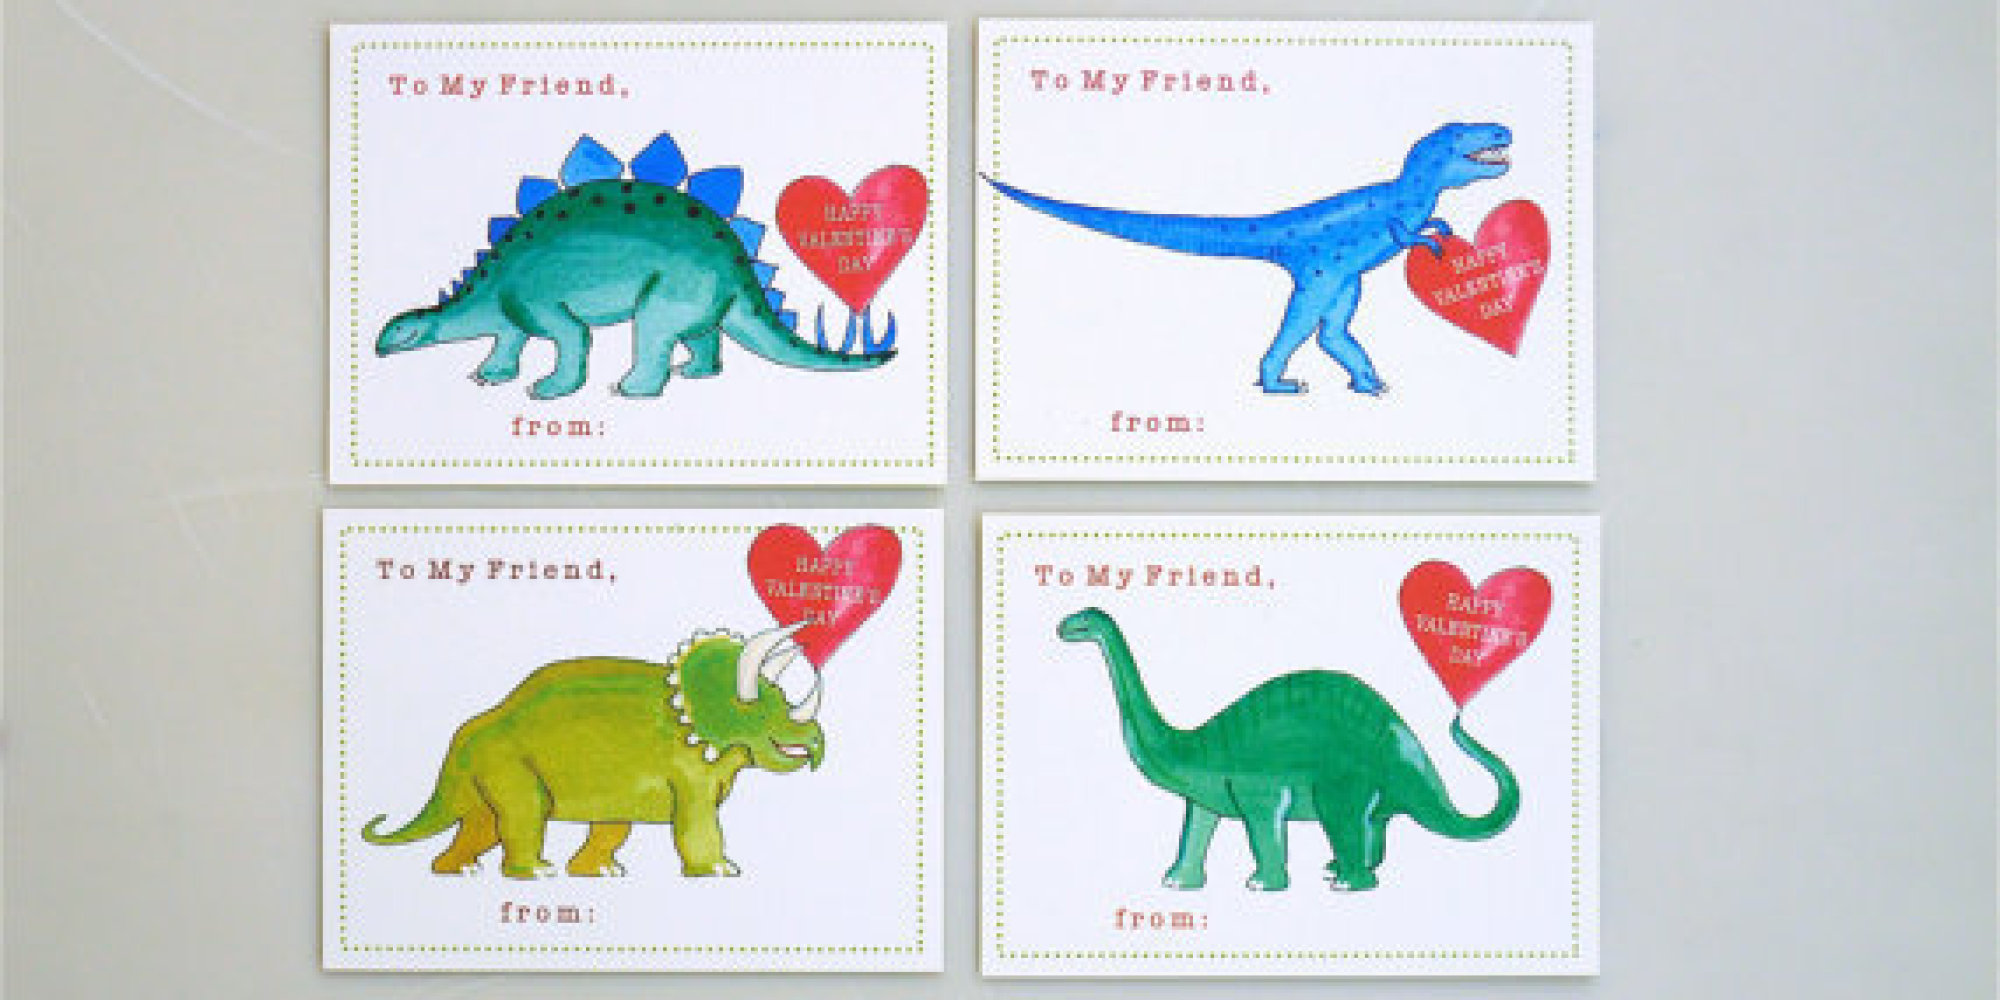 23 Valentines Day Cards That Are Actually Works Of Art